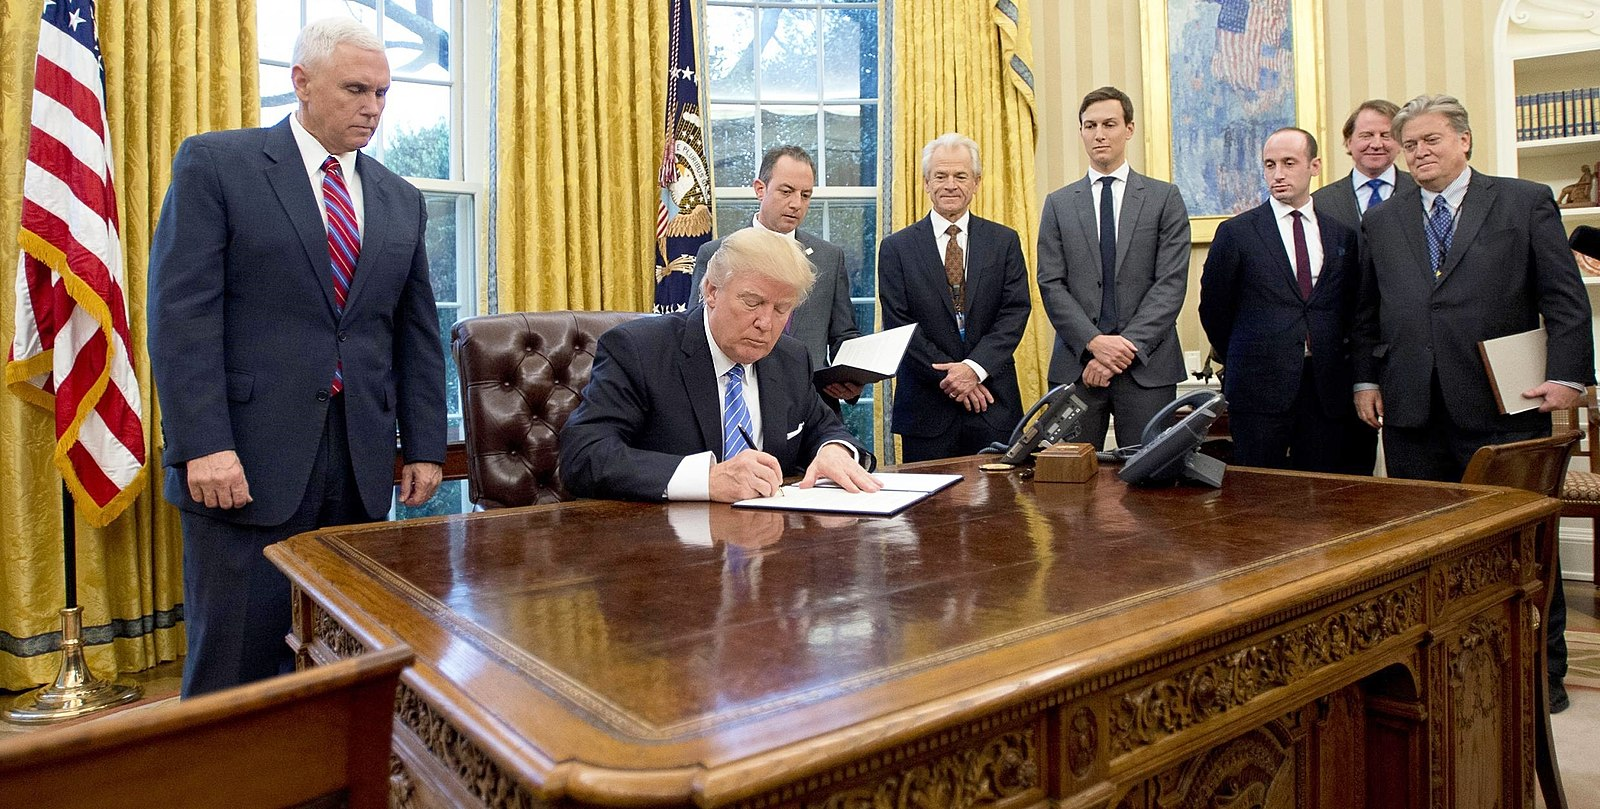 President Trump signs the Syria Genocide Relief and Accountability Act of 2018 into law